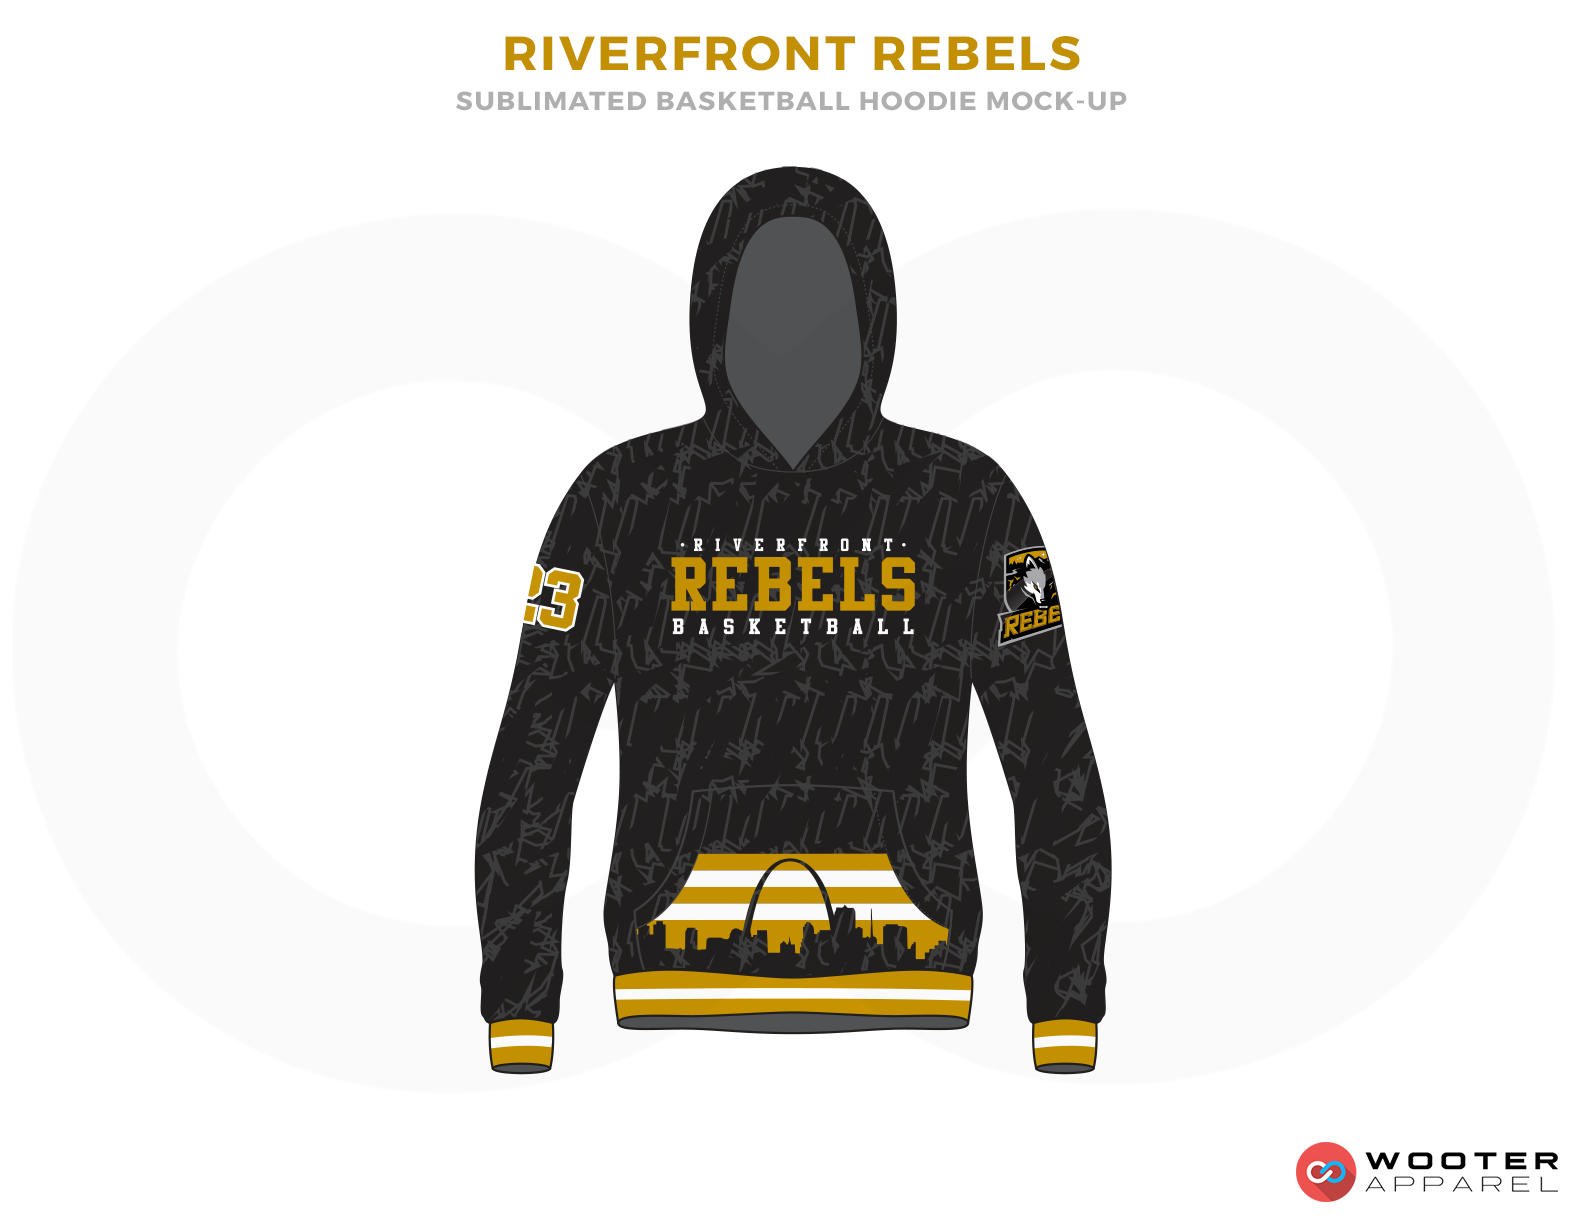 RIVERFRONT REBELS Black White and Yellow Basketball Uniforms, Hoodies